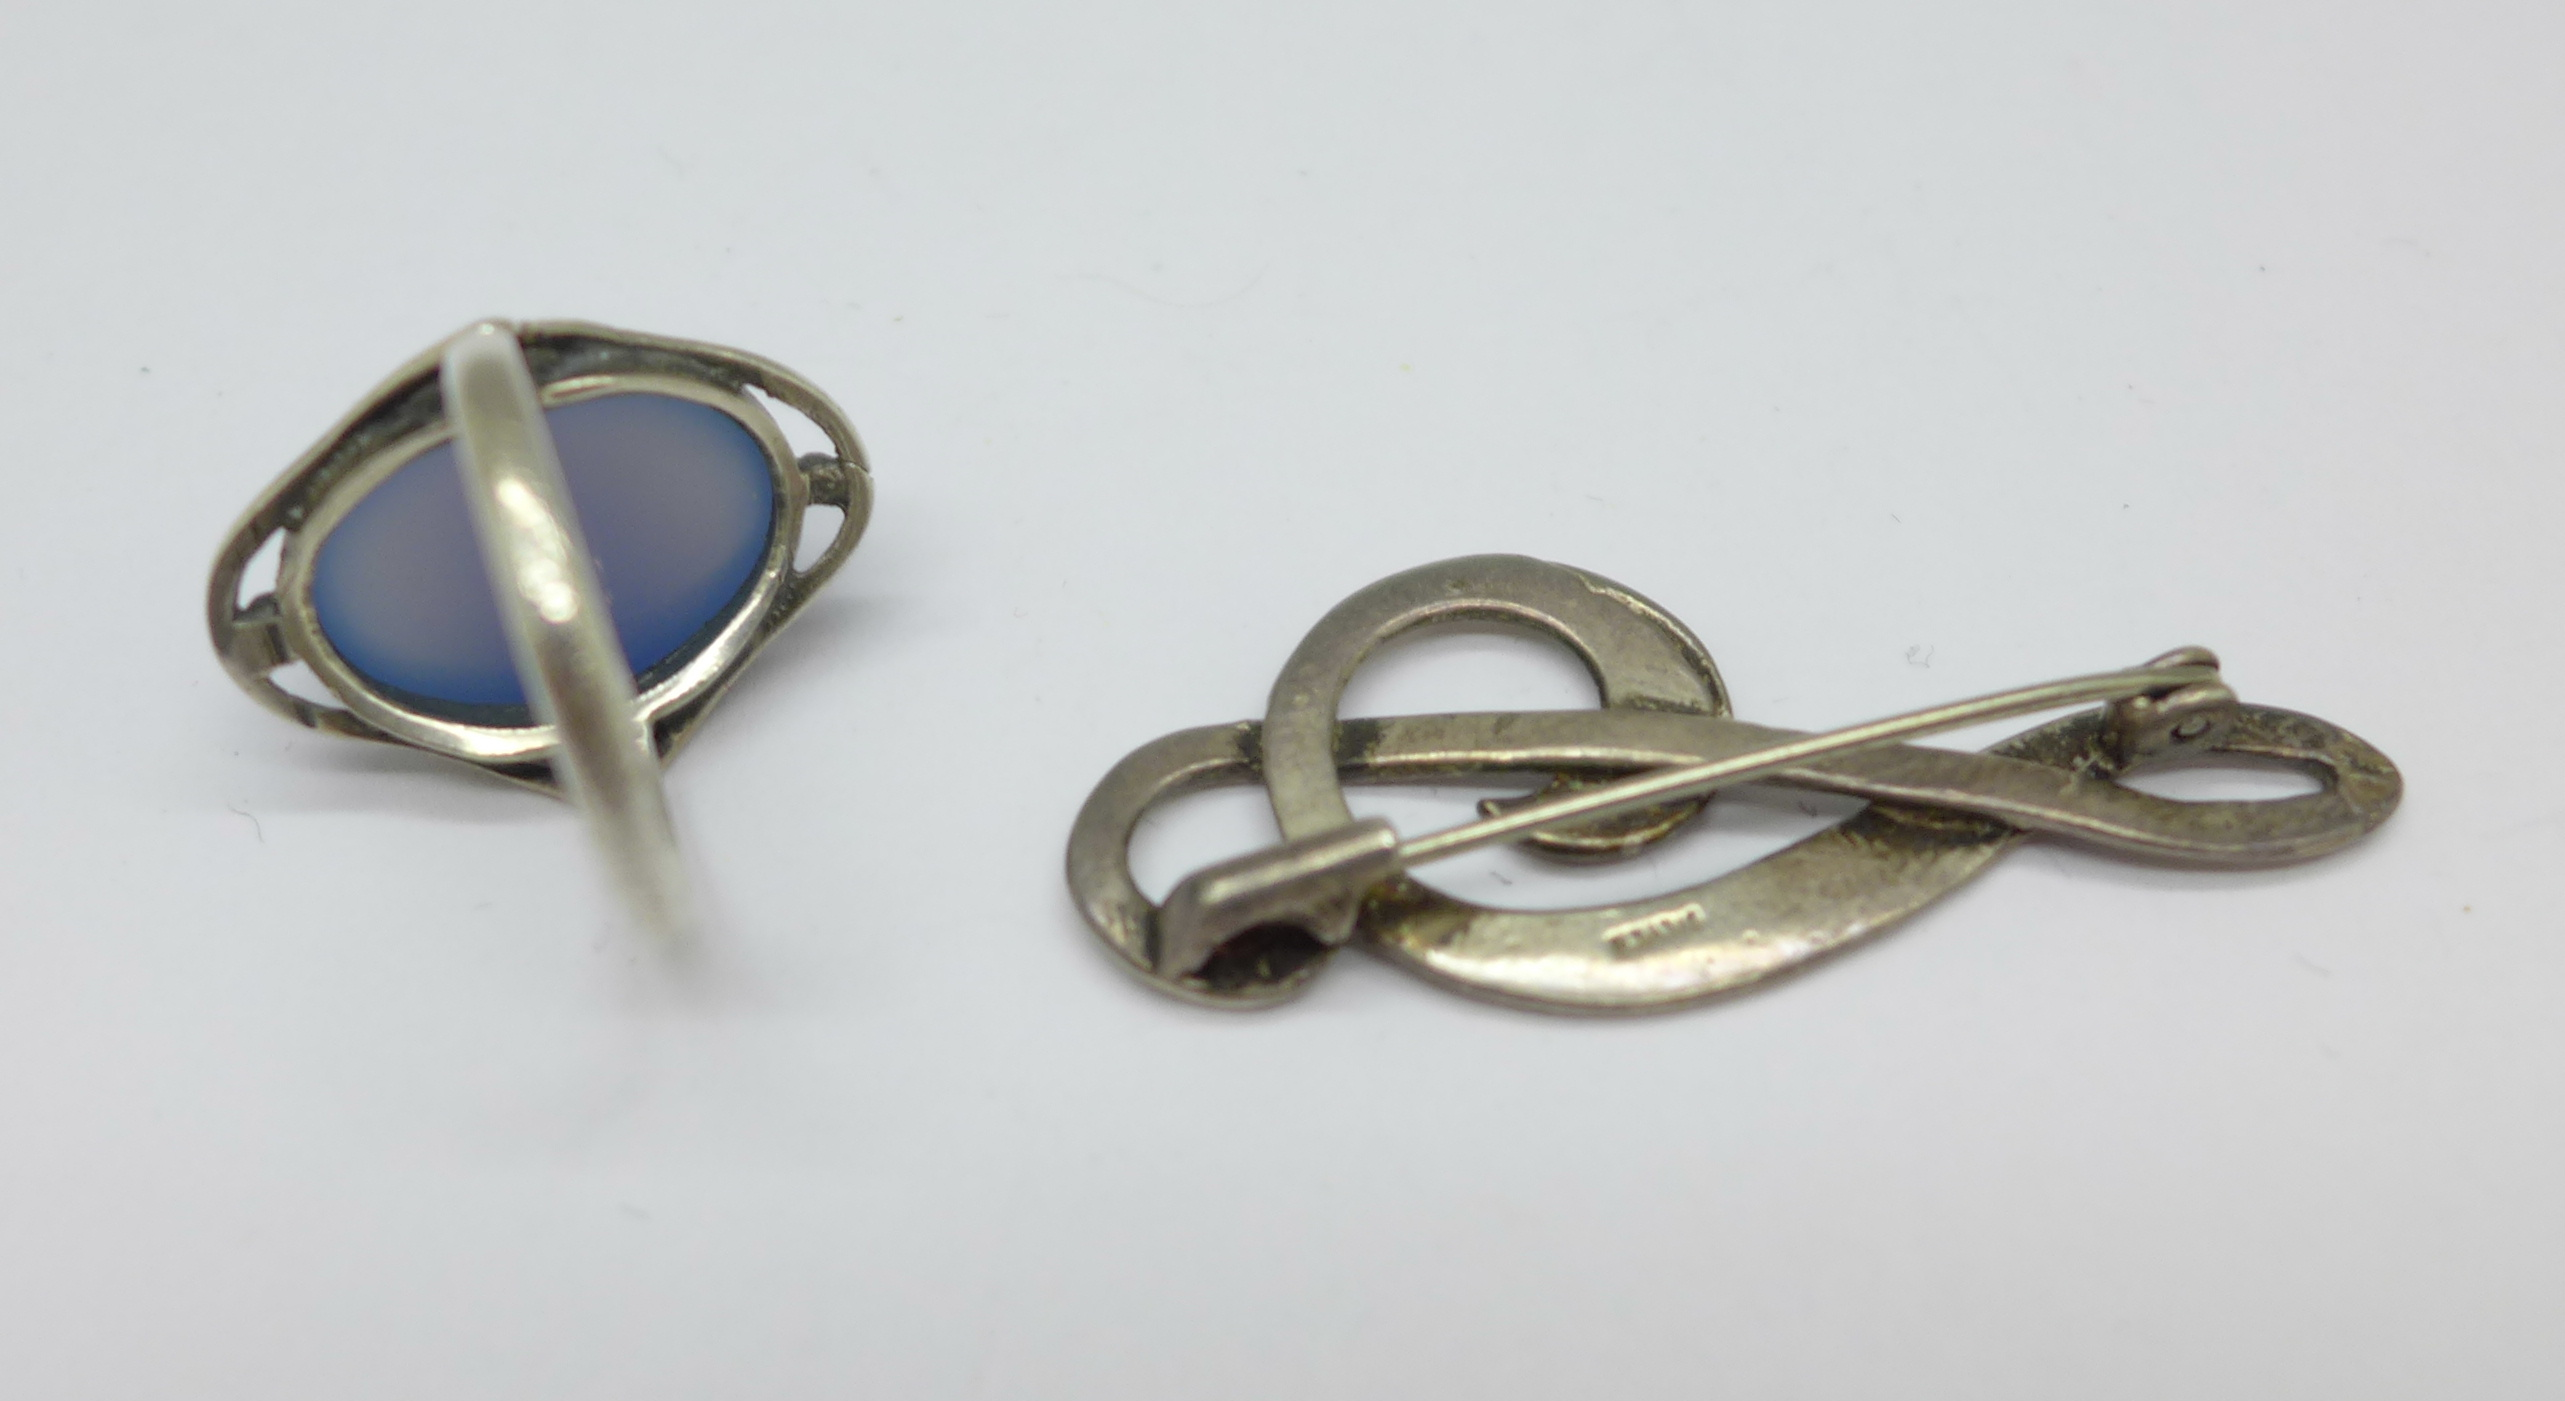 An Arts & Crafts silver ring set with chalcedony, L, and a treble clef brooch marked silver - Image 3 of 3